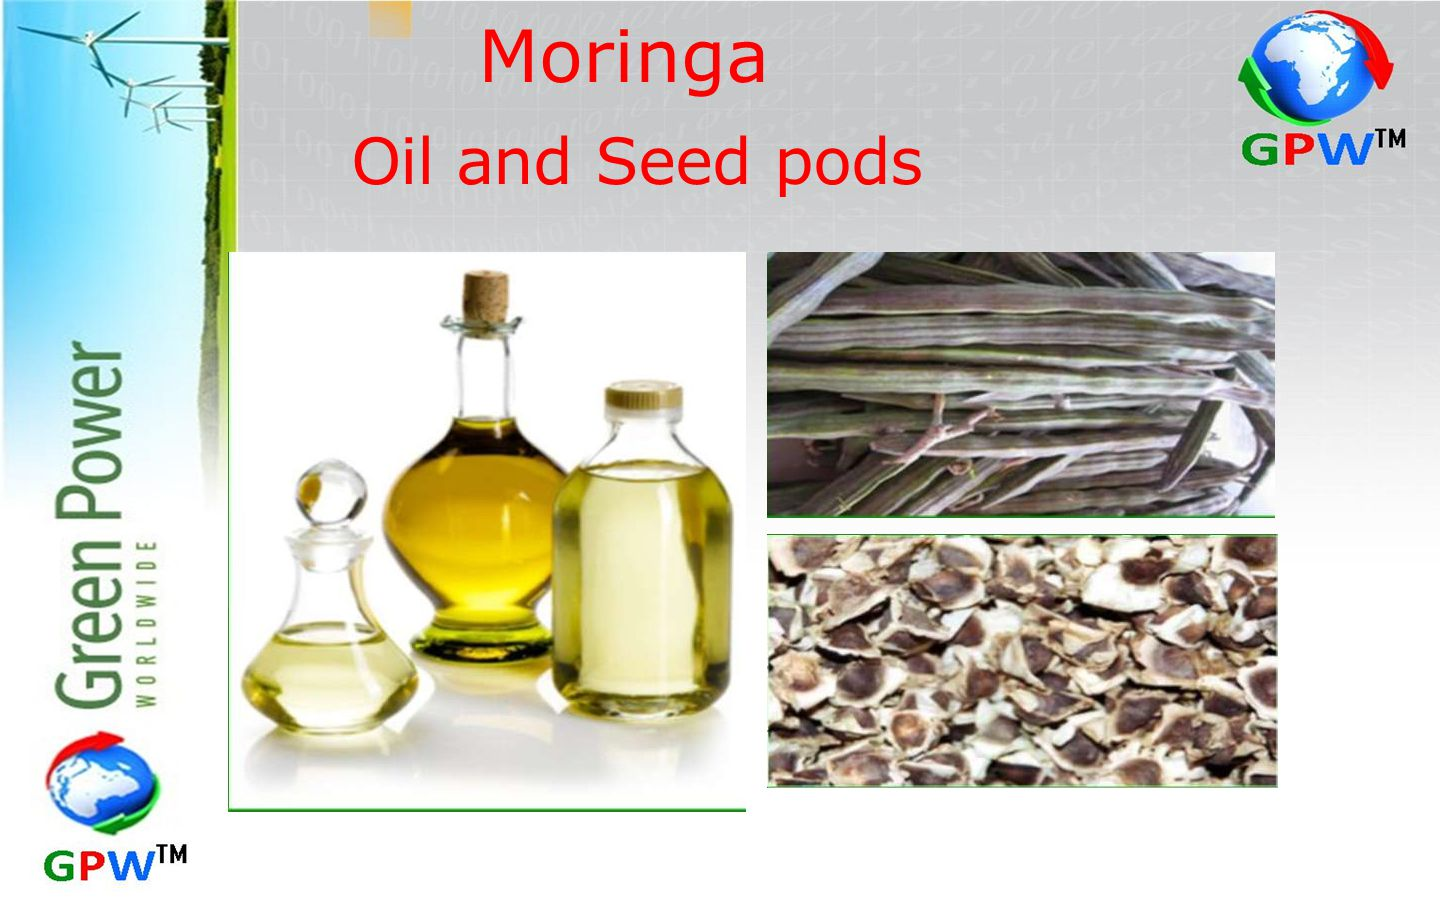 Moringa Oil and Seed pods